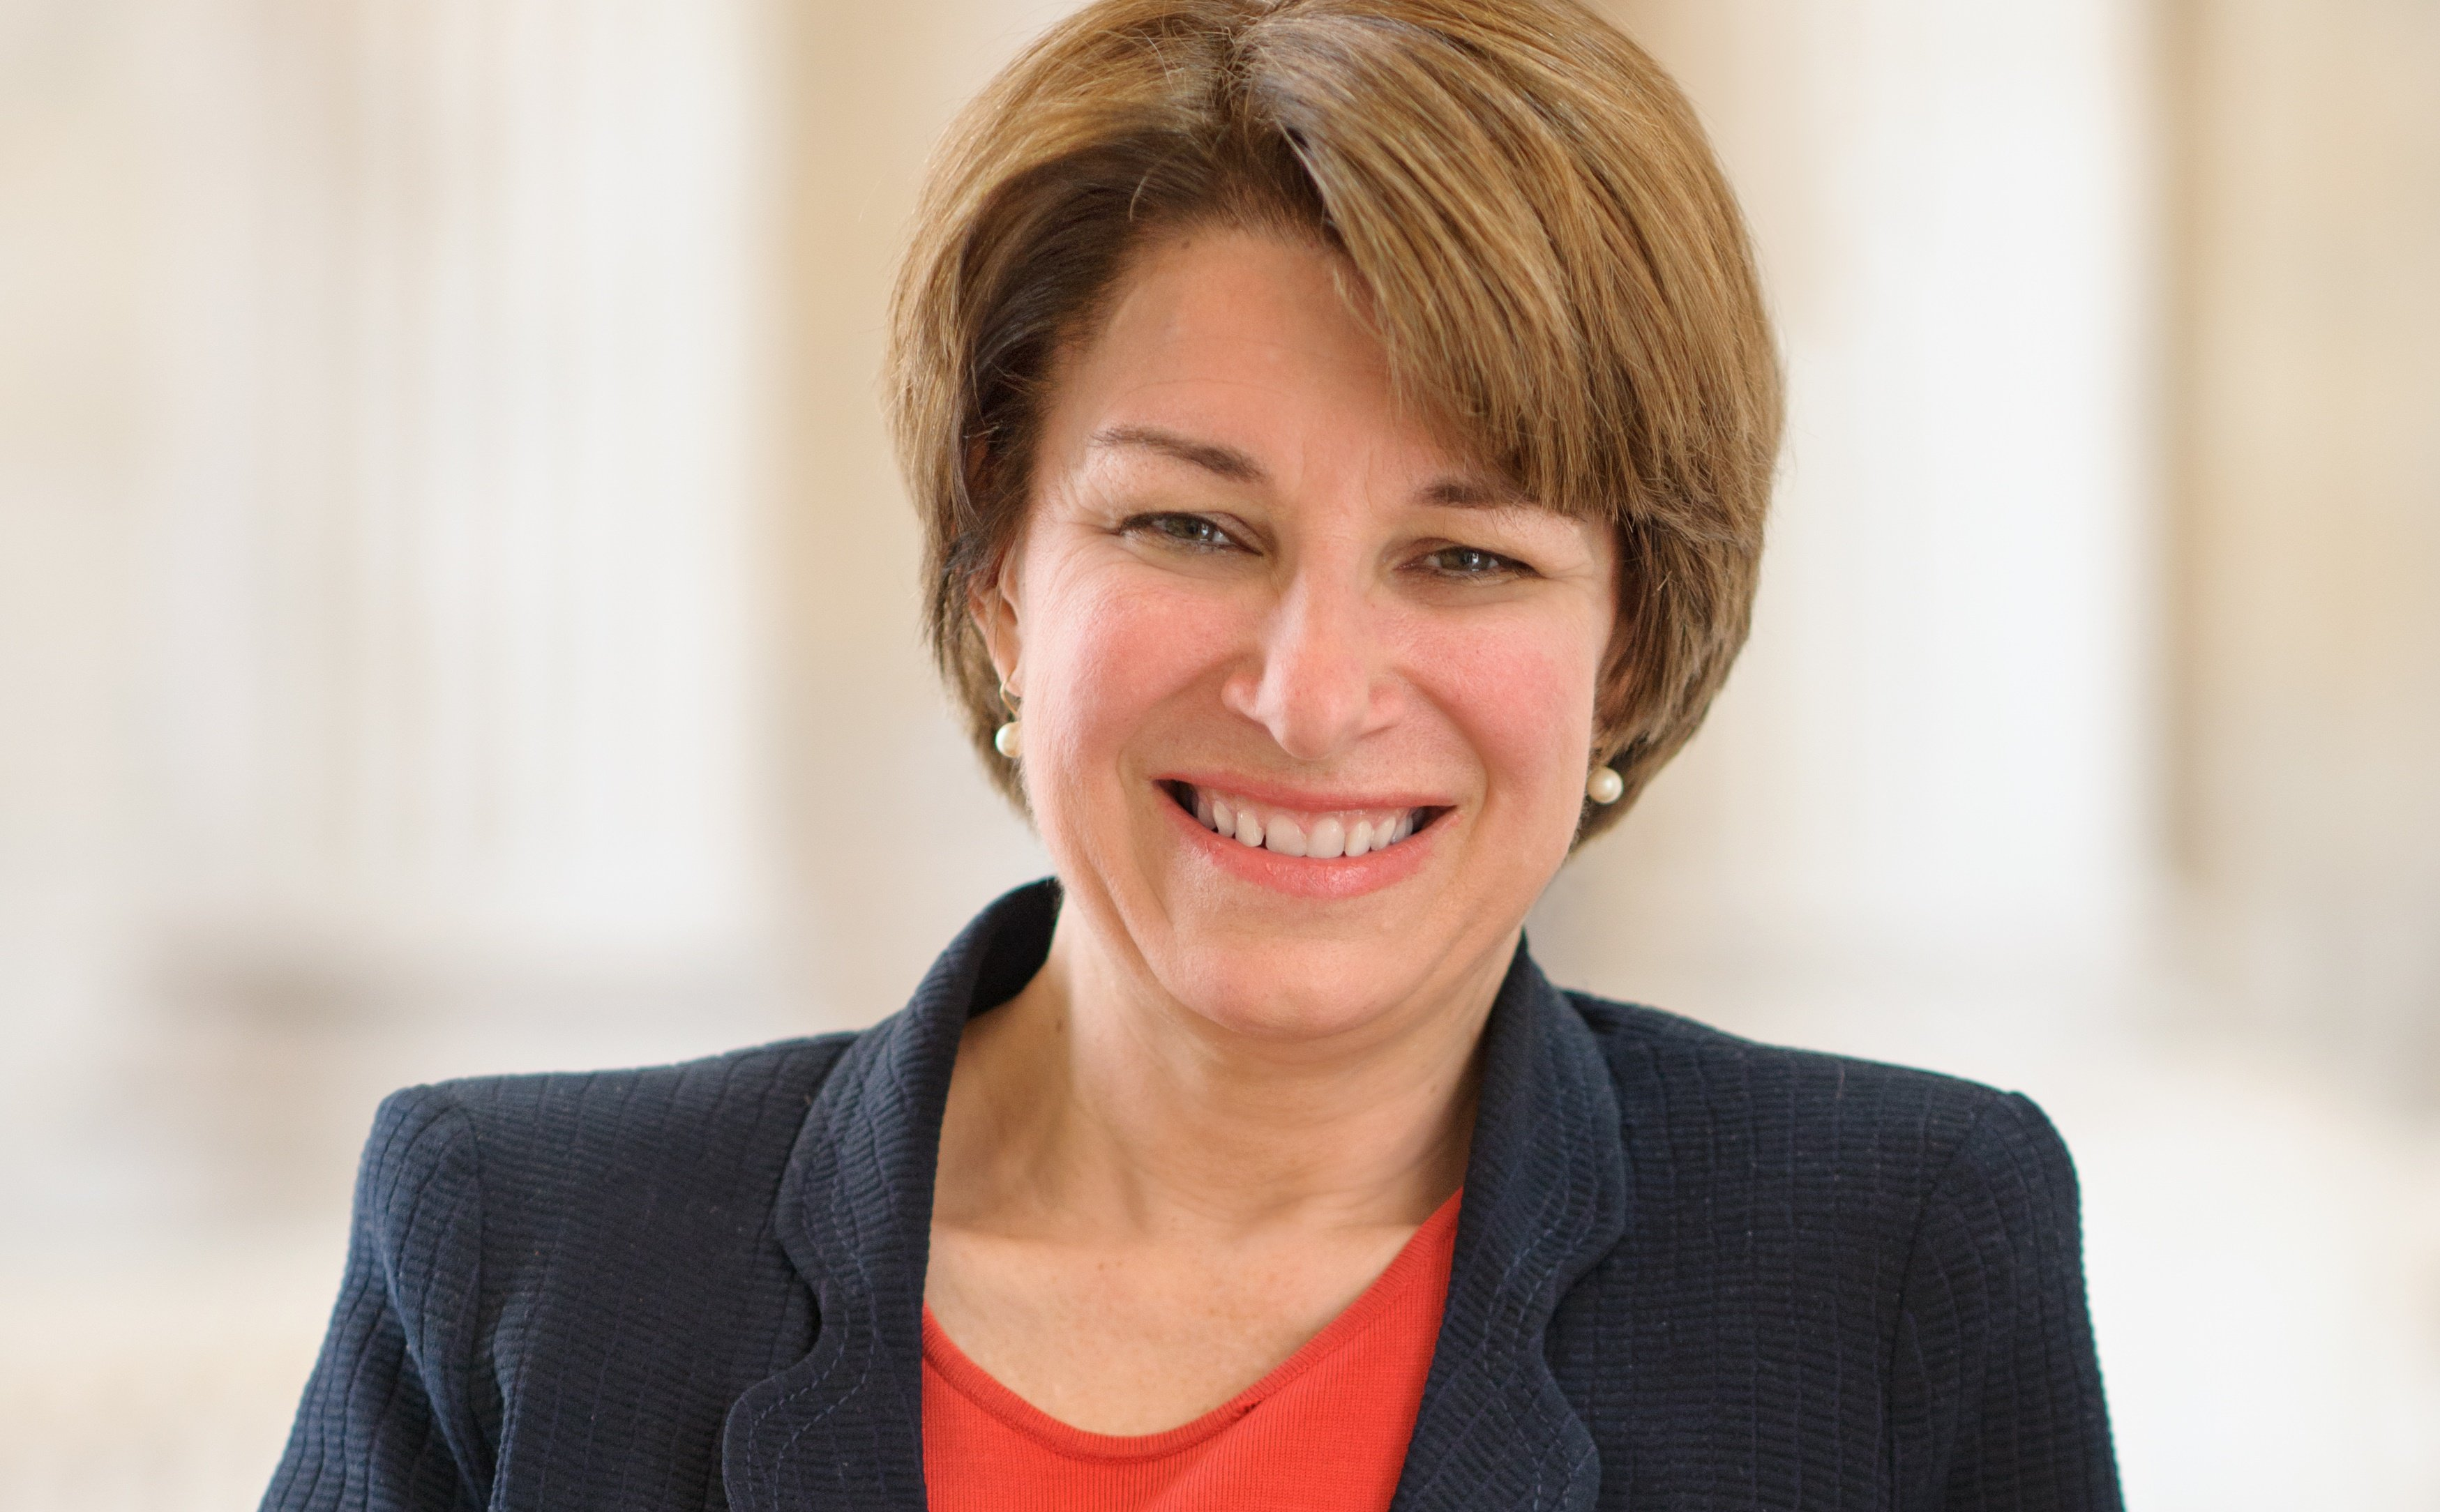 After blitzing Mylan, Klobuchar targets Kaléo's pricey Auvi-Q, 700% jack-up on opioid antidote | FiercePharma